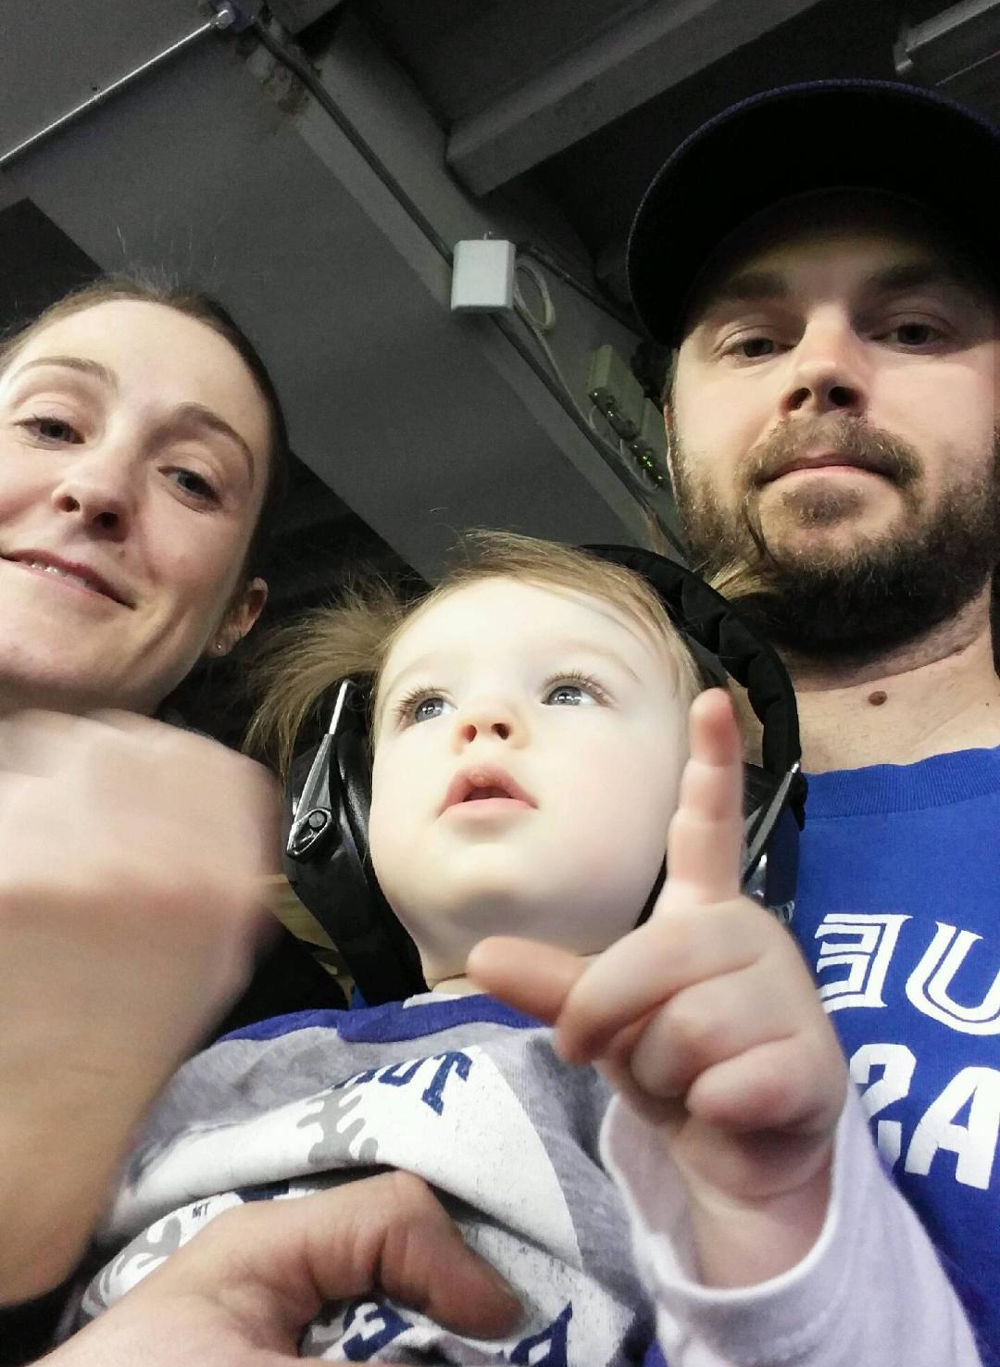 Family day at the Jays game